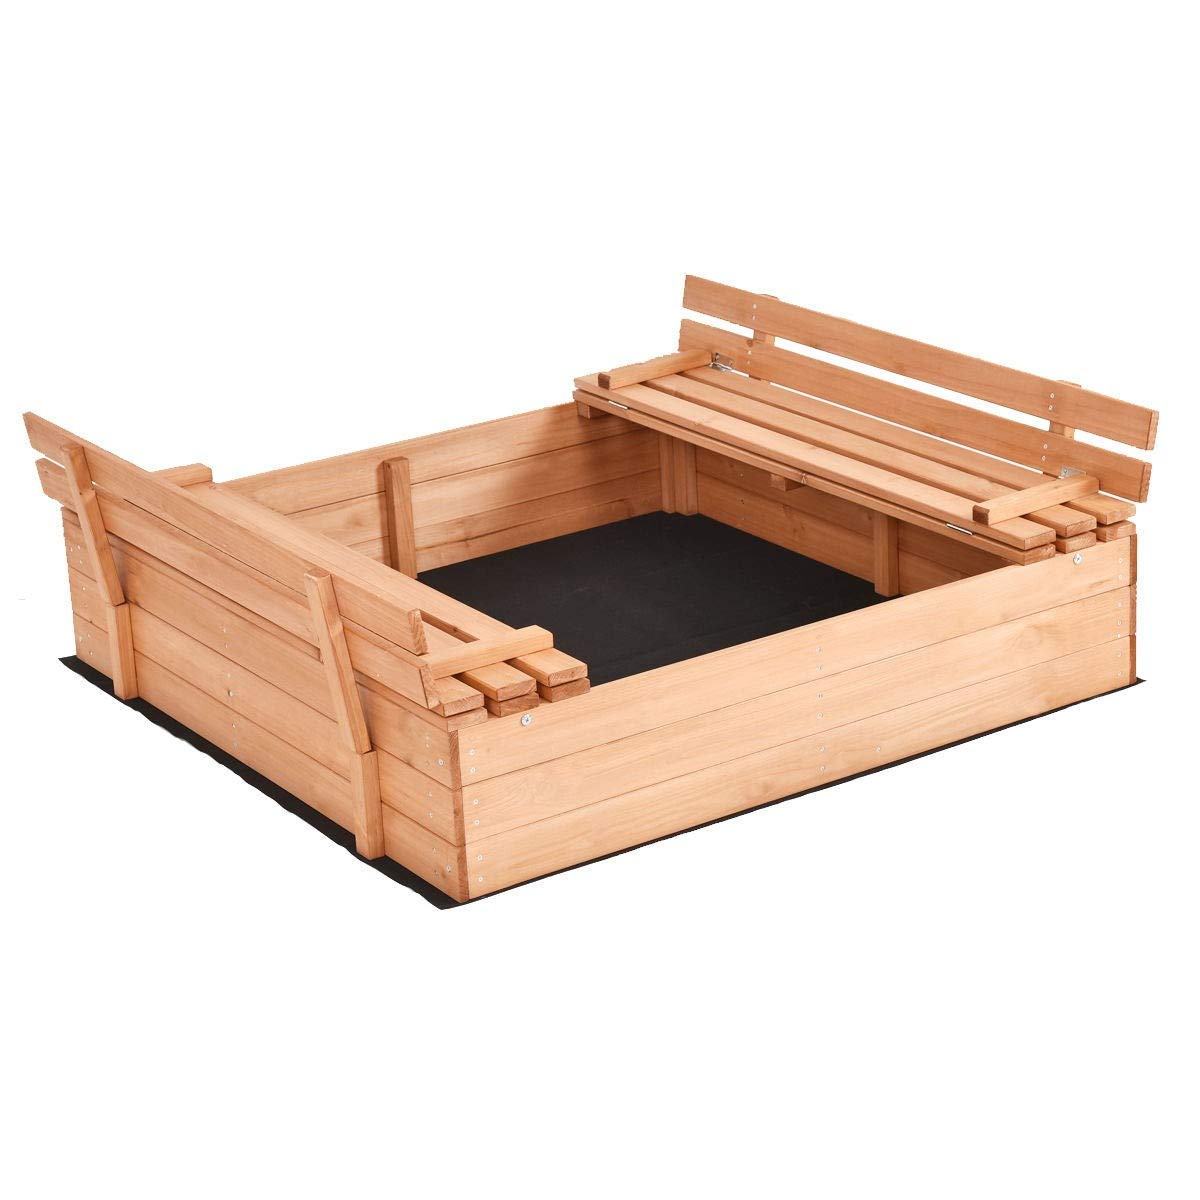 USA_BEST_SELLER Children Outdoor Foldable Retractable Sandbox Bench Seat Box by USA_BEST_SELLER (Image #1)